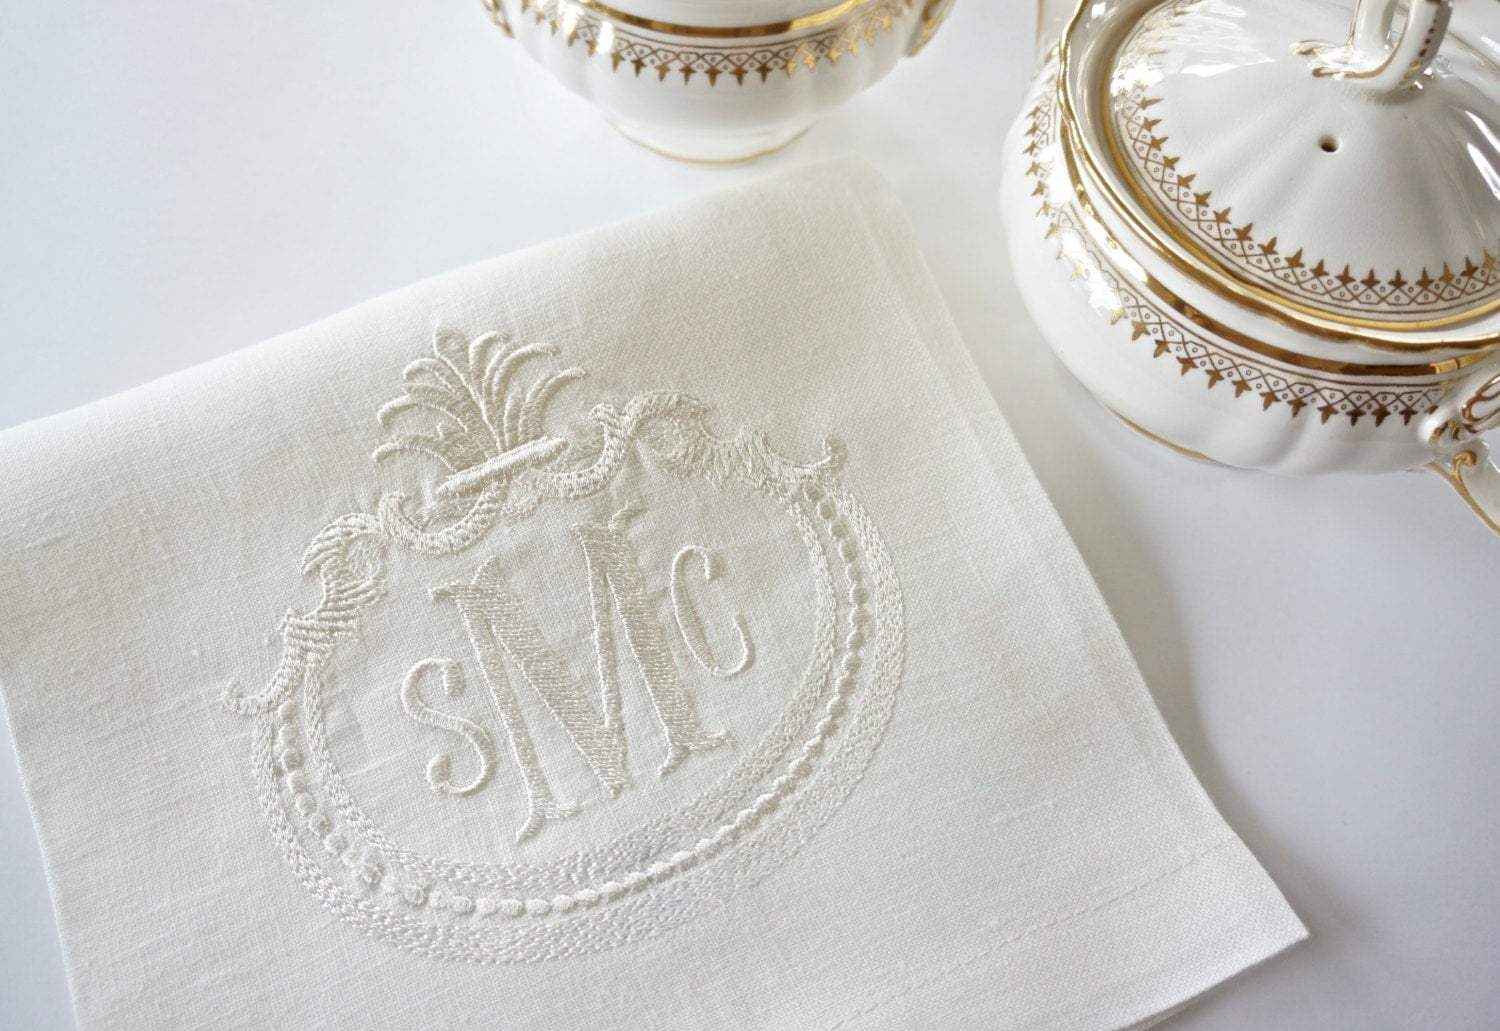 French Antique Frame With Monogram Embroidered Dinner